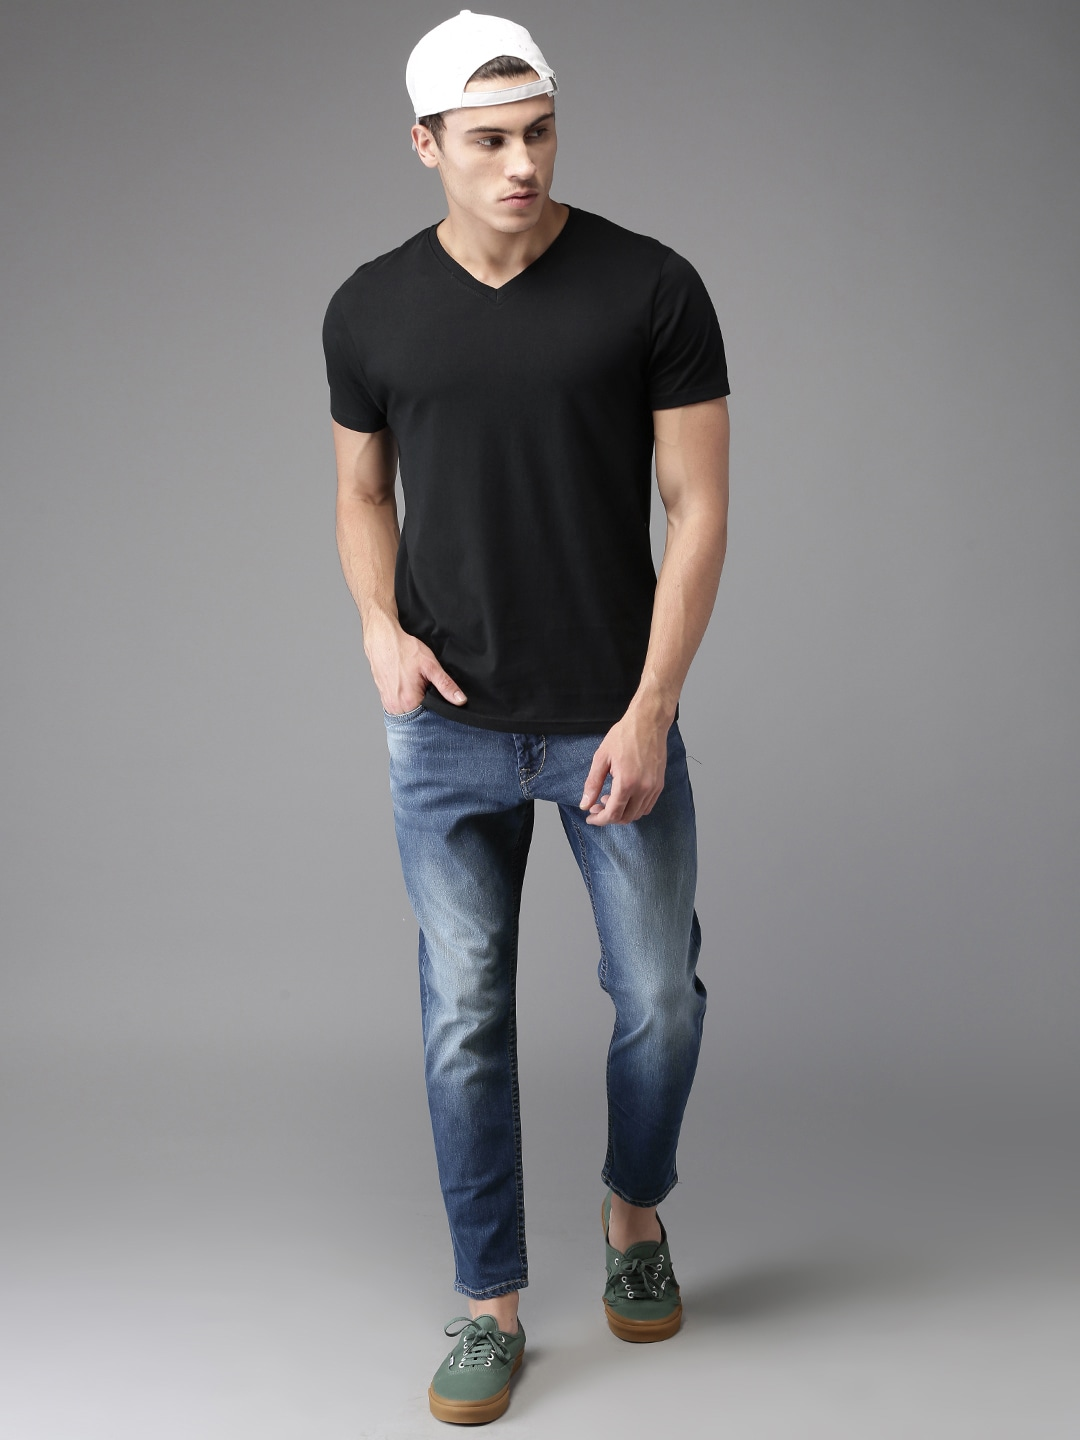 90a4c78cb28d V Neck T-shirt - Buy V Neck T-shirts Online in India